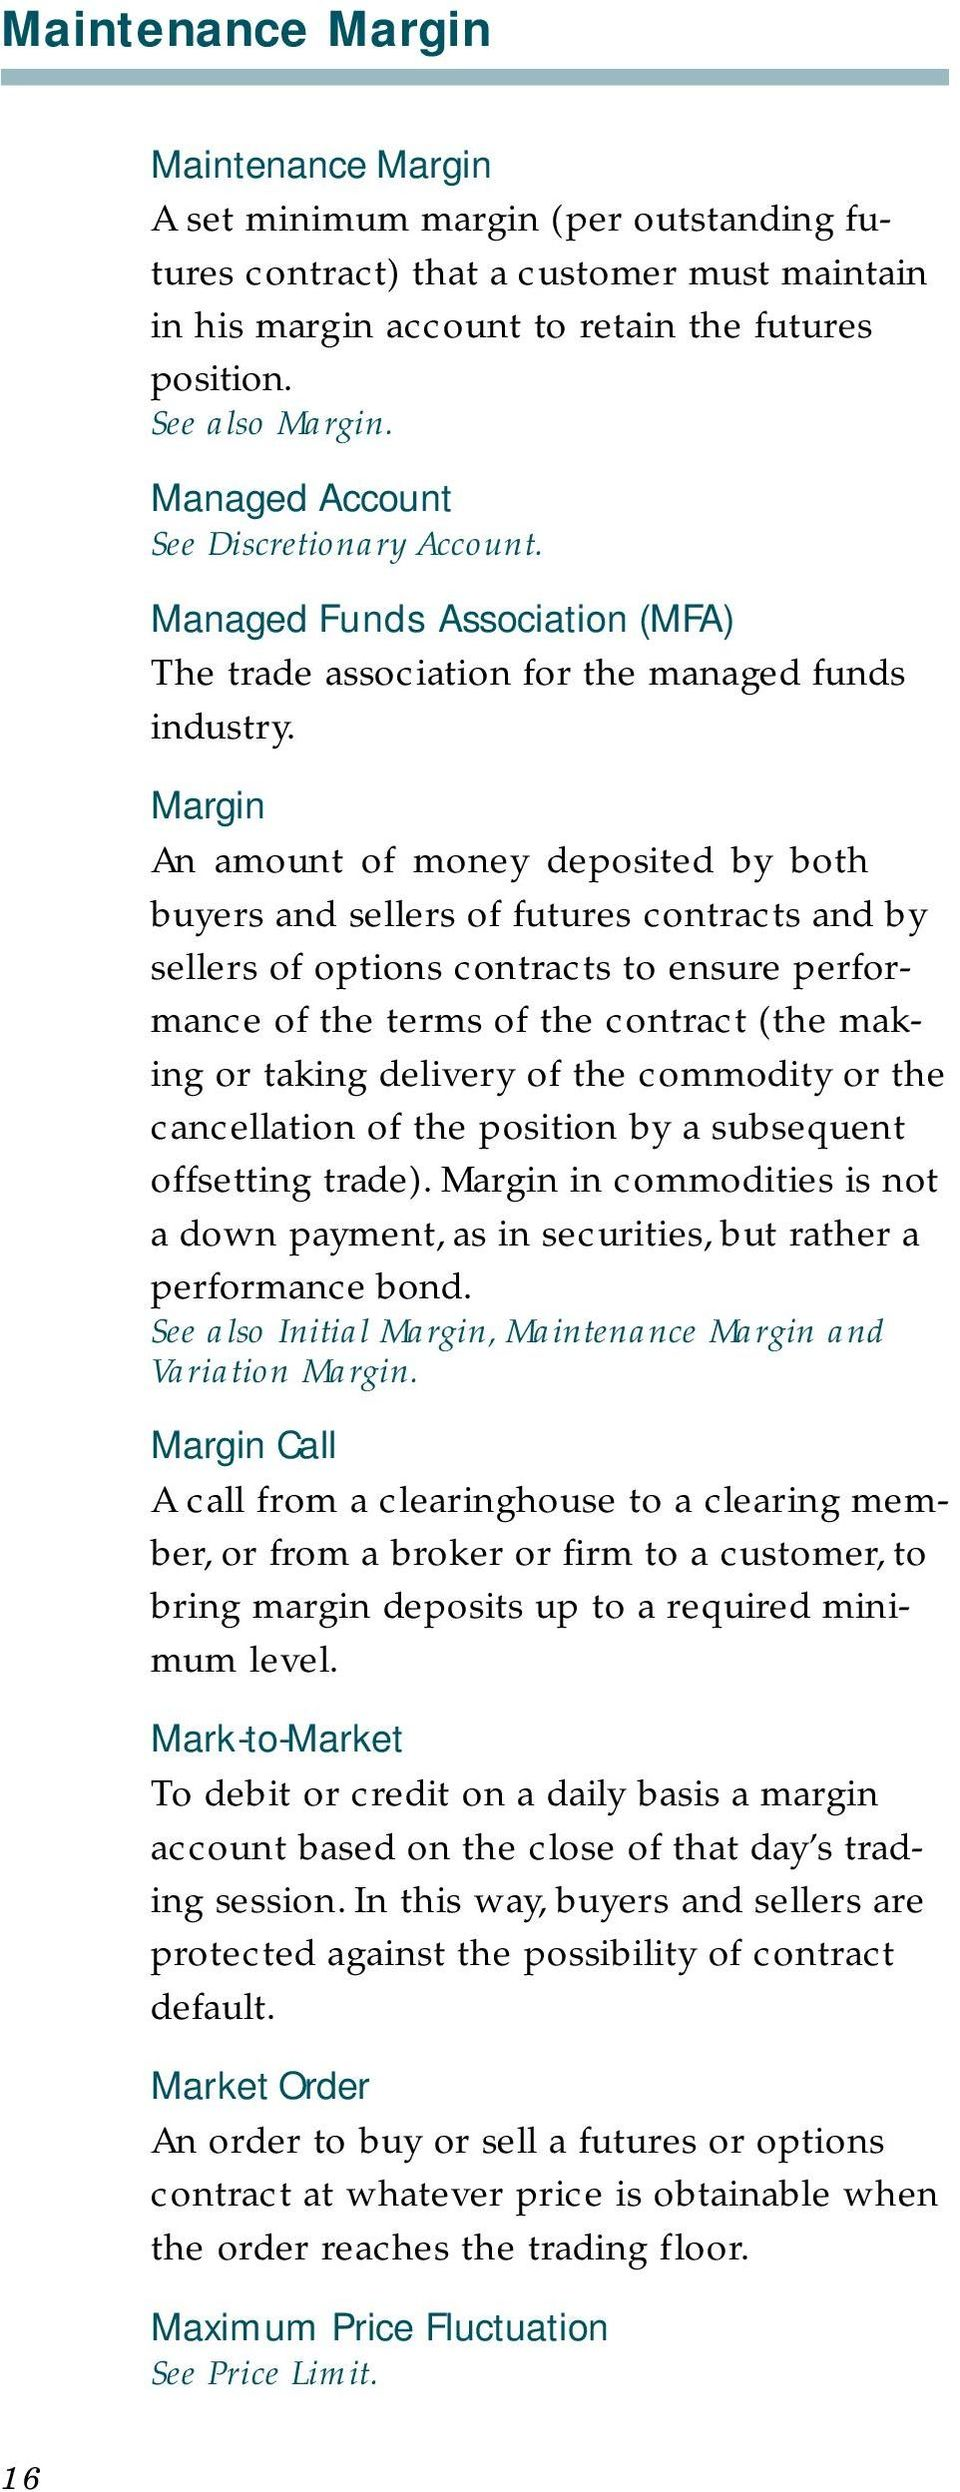 Margin An amount of money deposited by both buyers and sellers of futures contracts and by sellers of options contracts to ensure performance of the terms of the contract (the making or taking